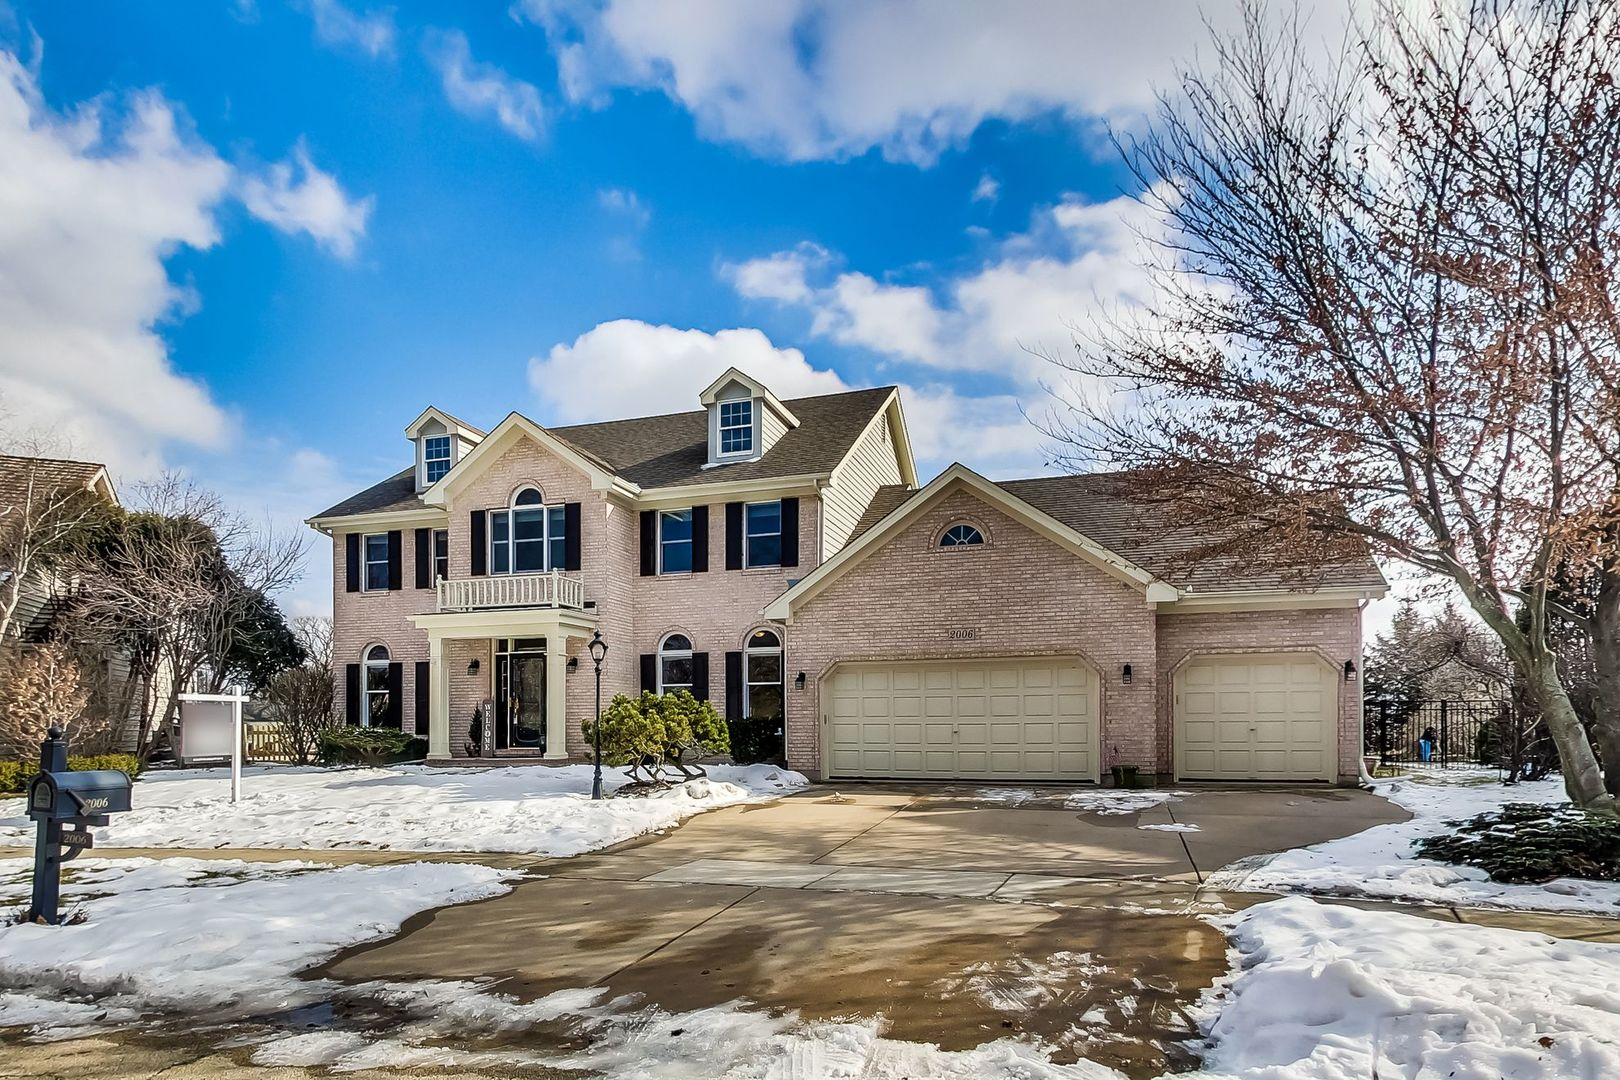 Photo for 2006 Bridle Court, St. Charles, IL 60174 (MLS # 10637490)